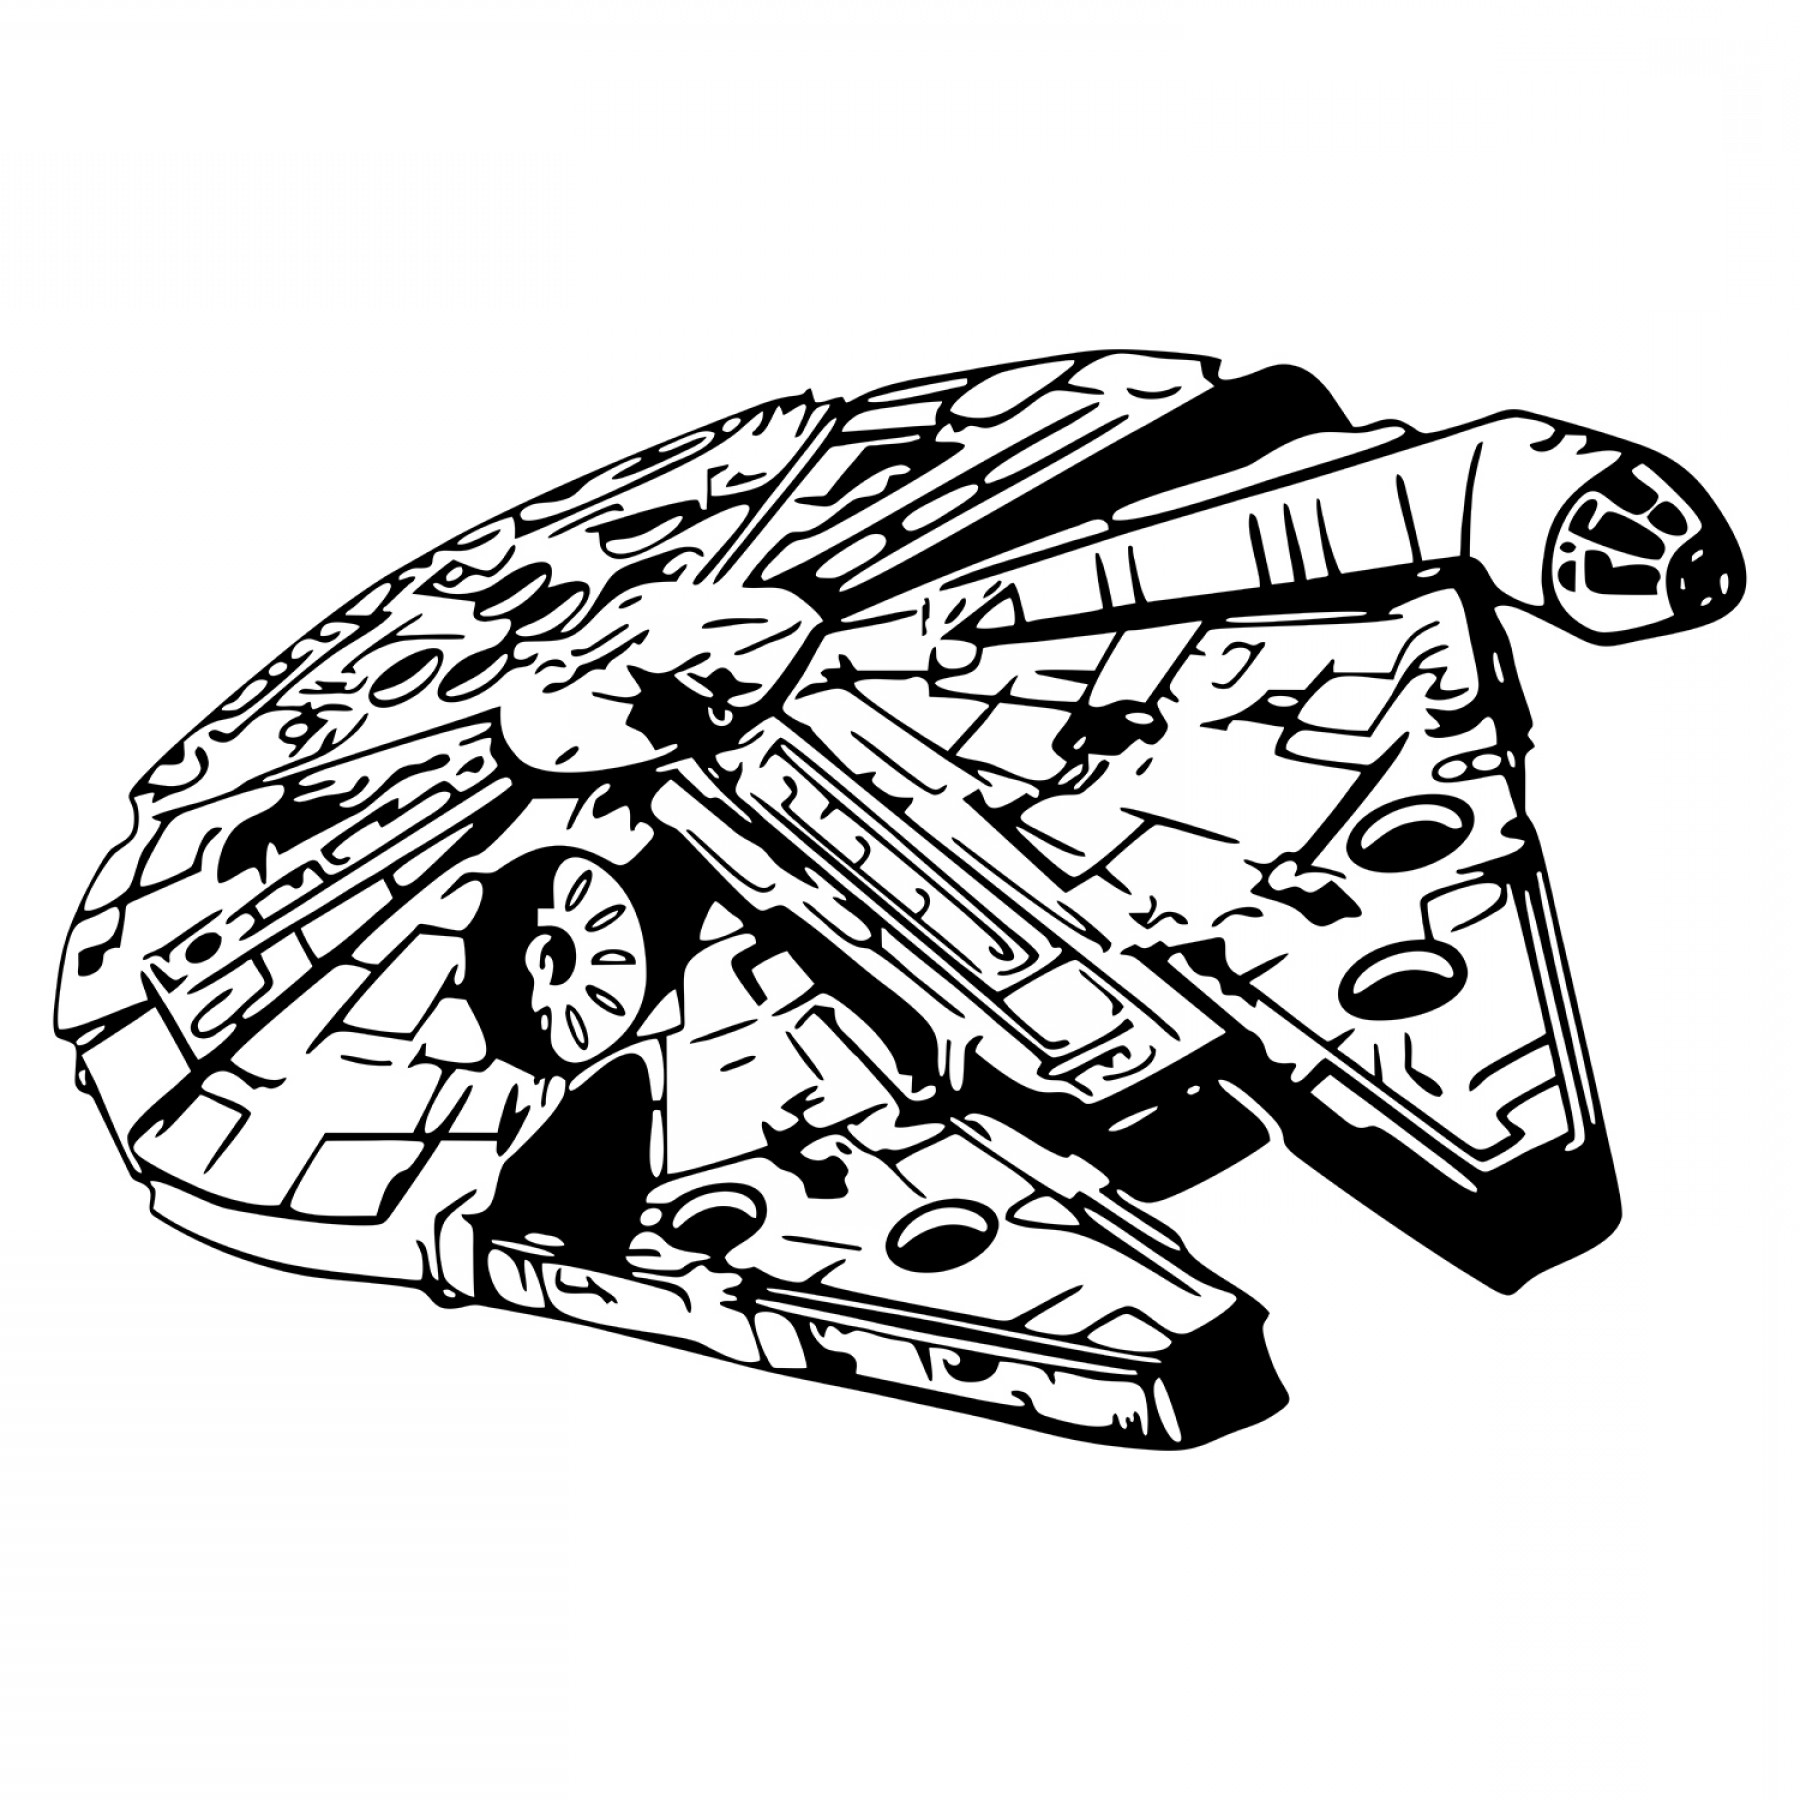 Star Wars Millennium Falcon Spacecraft Design Svg Dxf Eps.